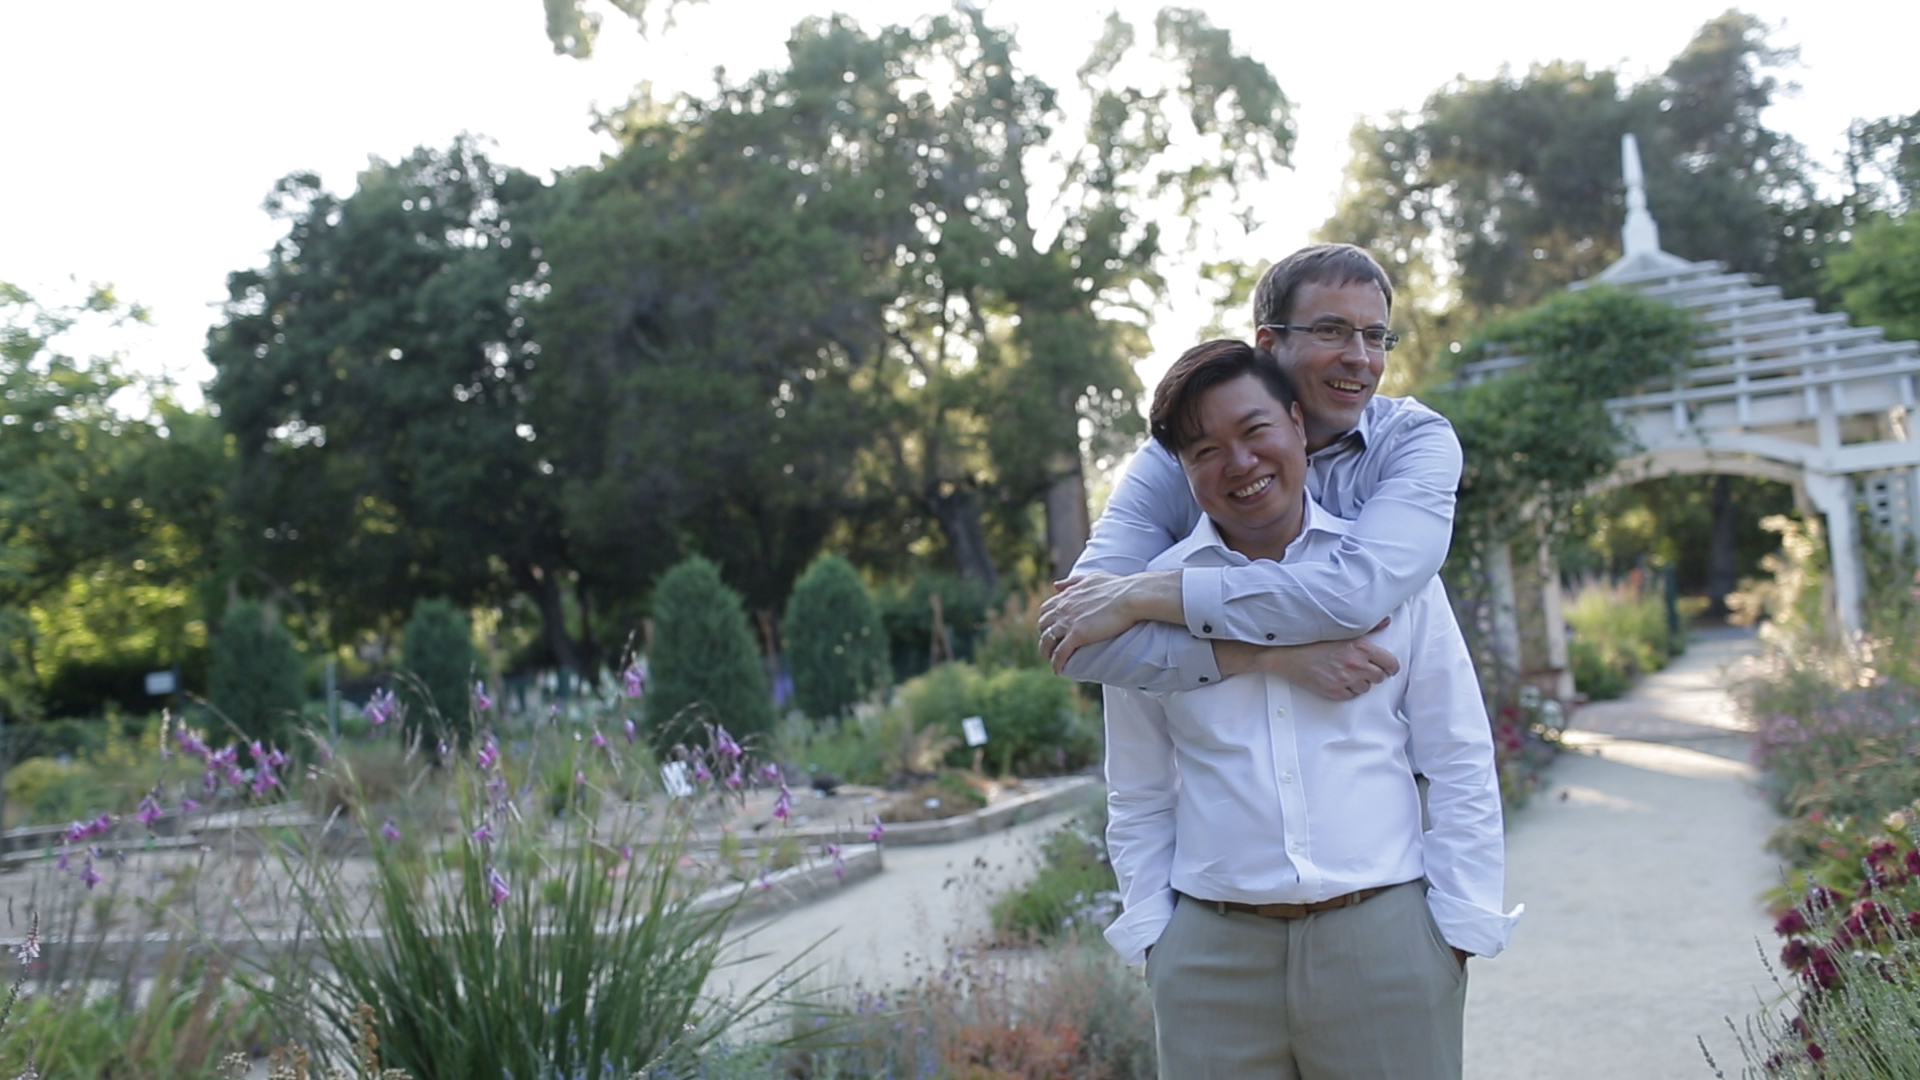 Ben and David Elizabeth Gamble Garden Wedding Videographer Palo Alto Weddign Videographer